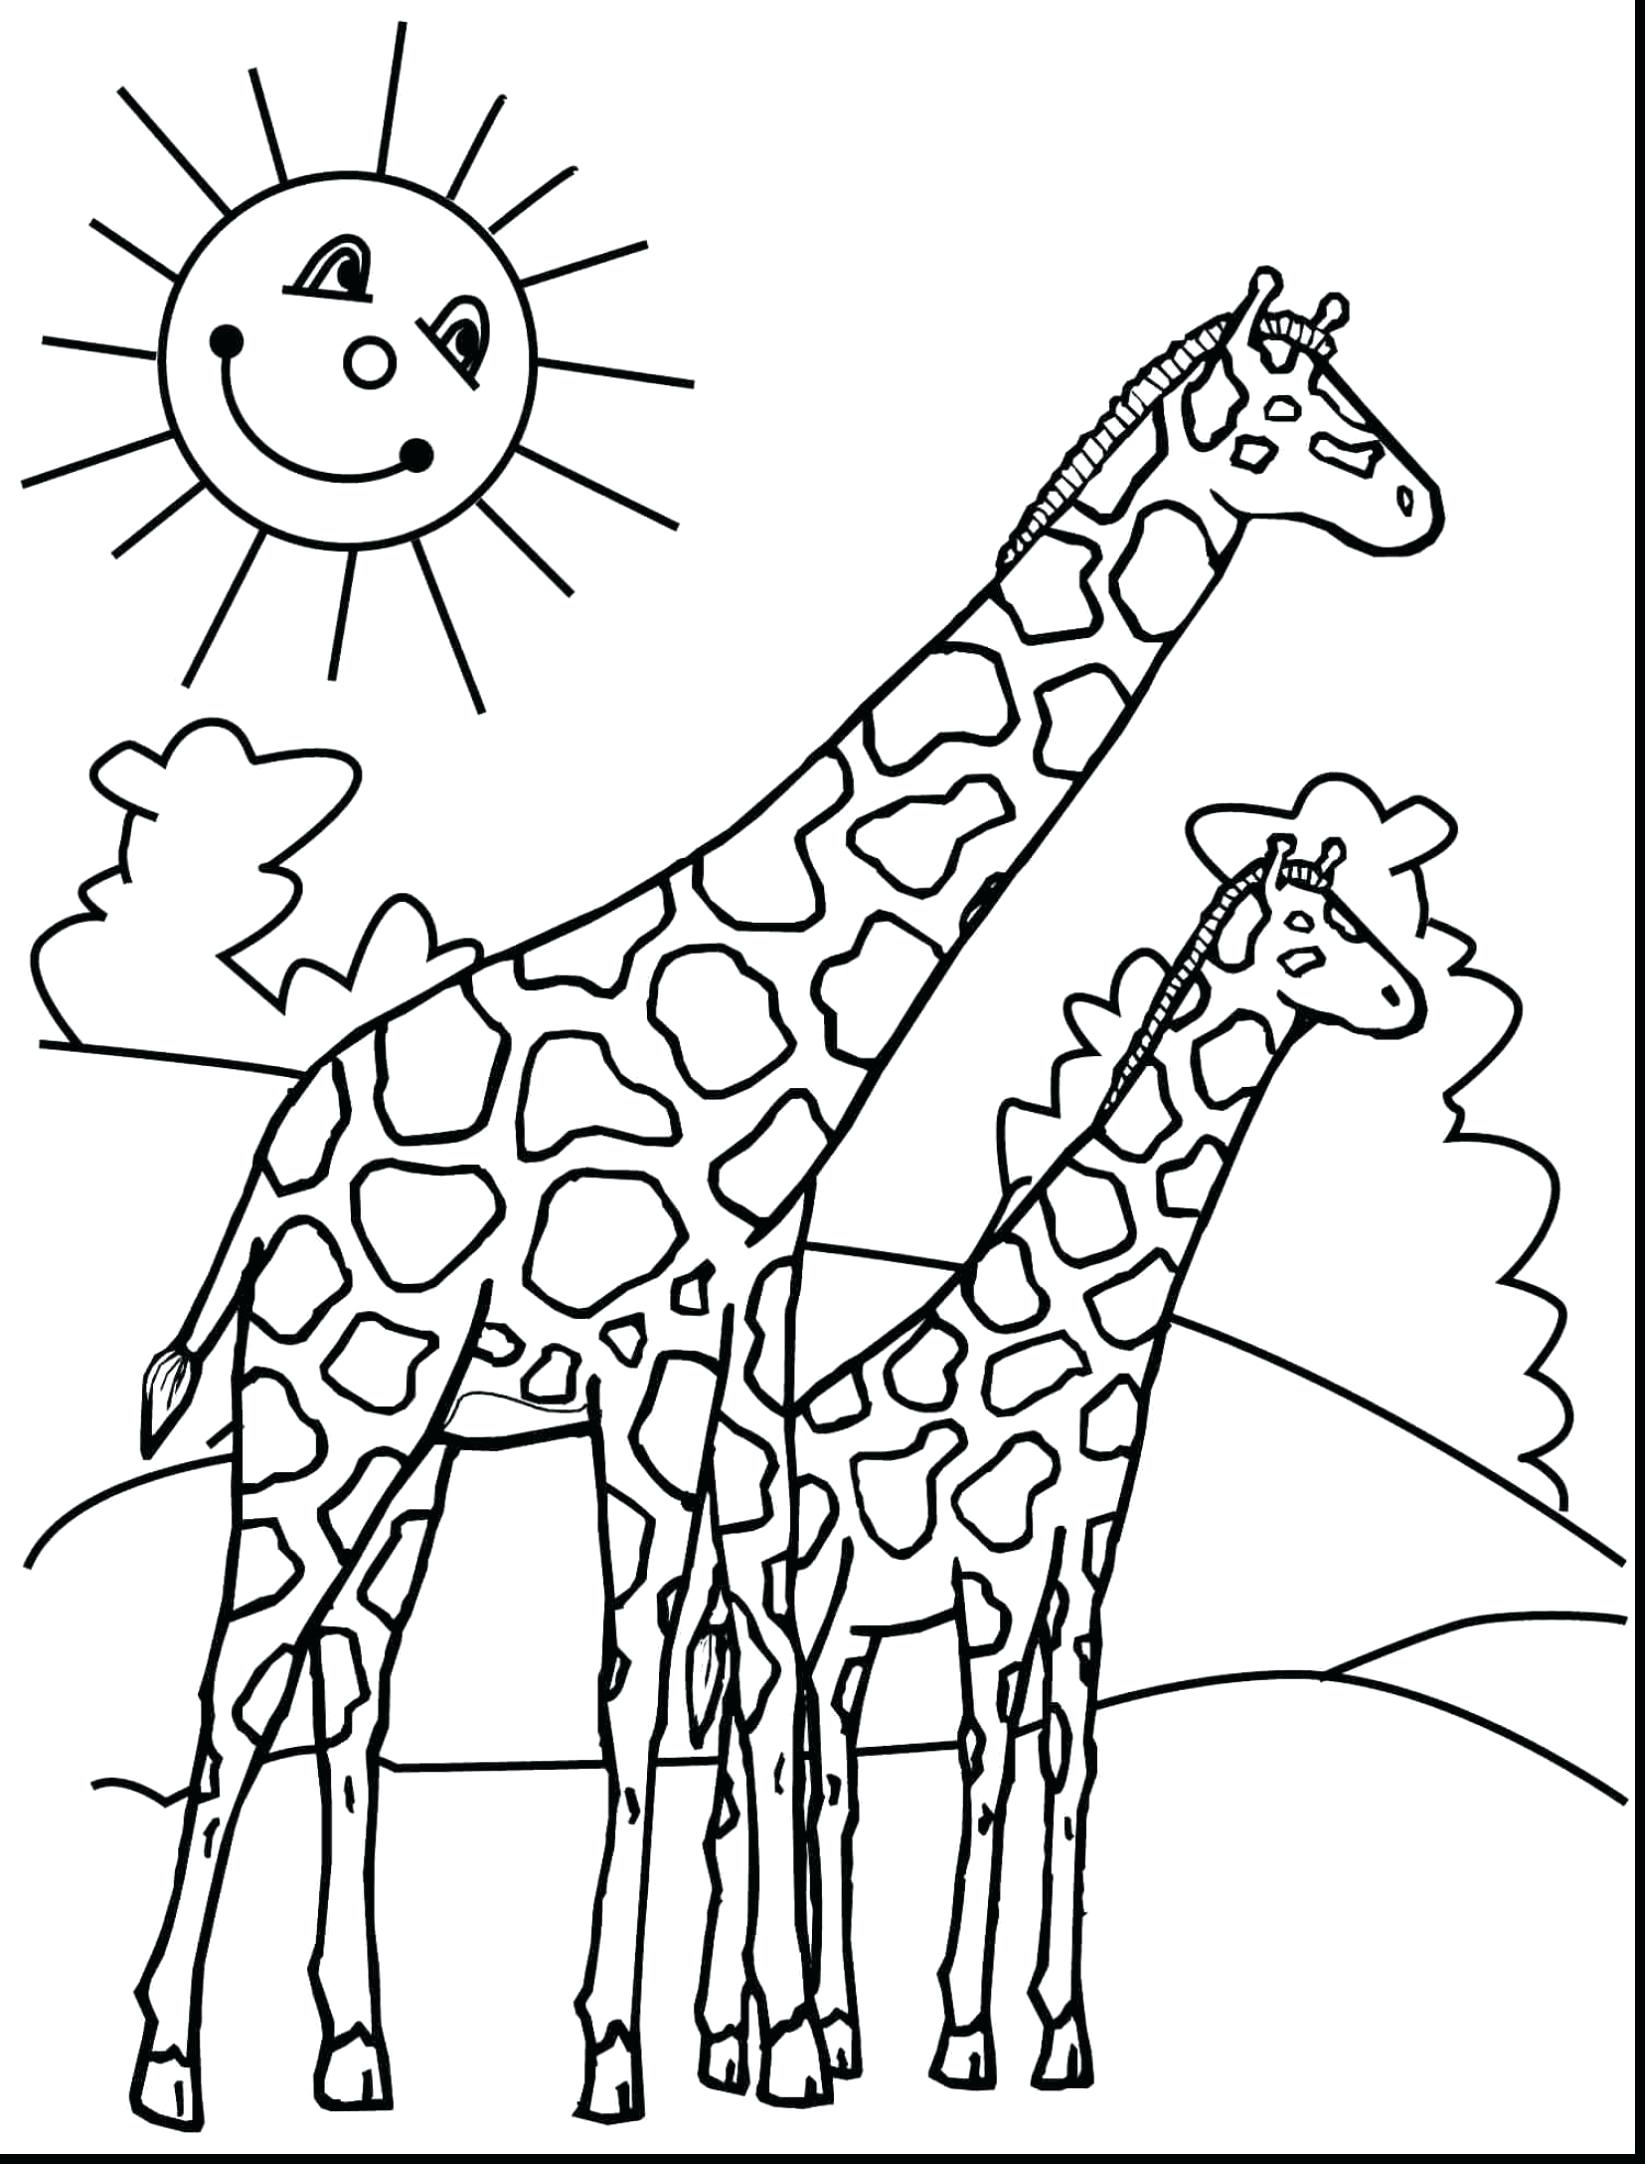 1645x2164 Cute Baby Giraffe Coloring Pages Printable Coloring For Kids